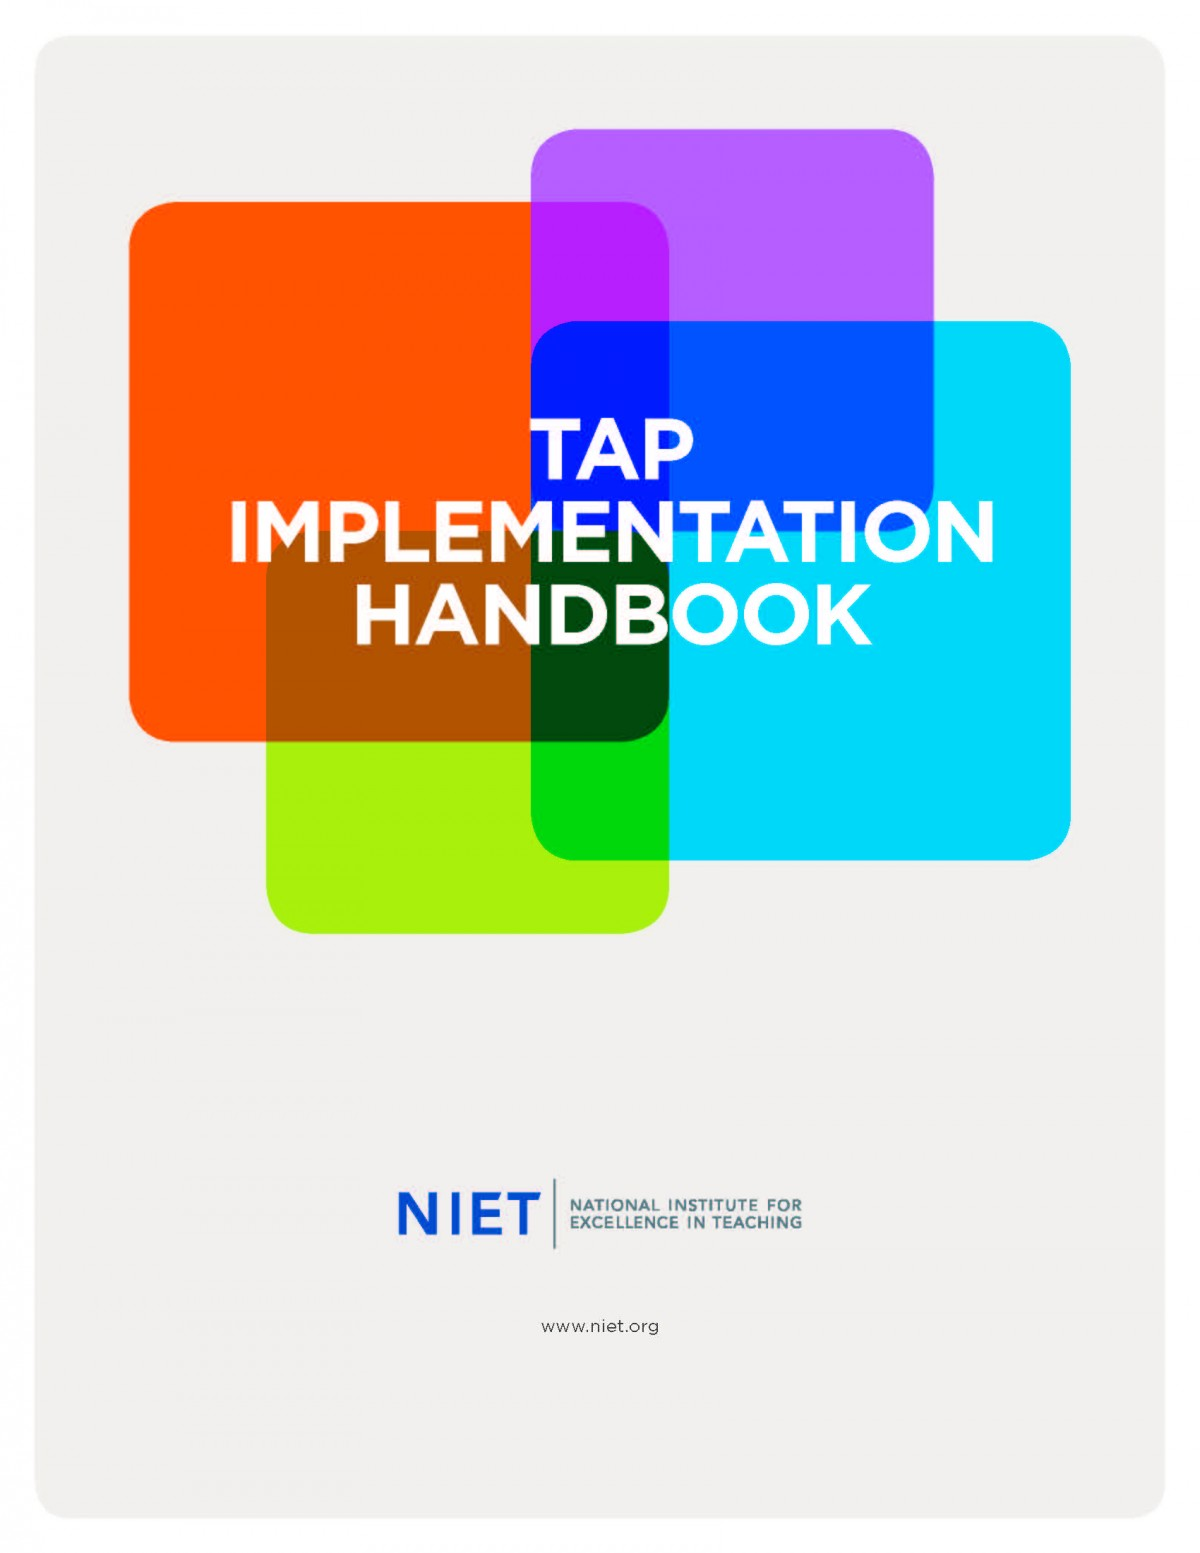 TAP Implementation Handbook